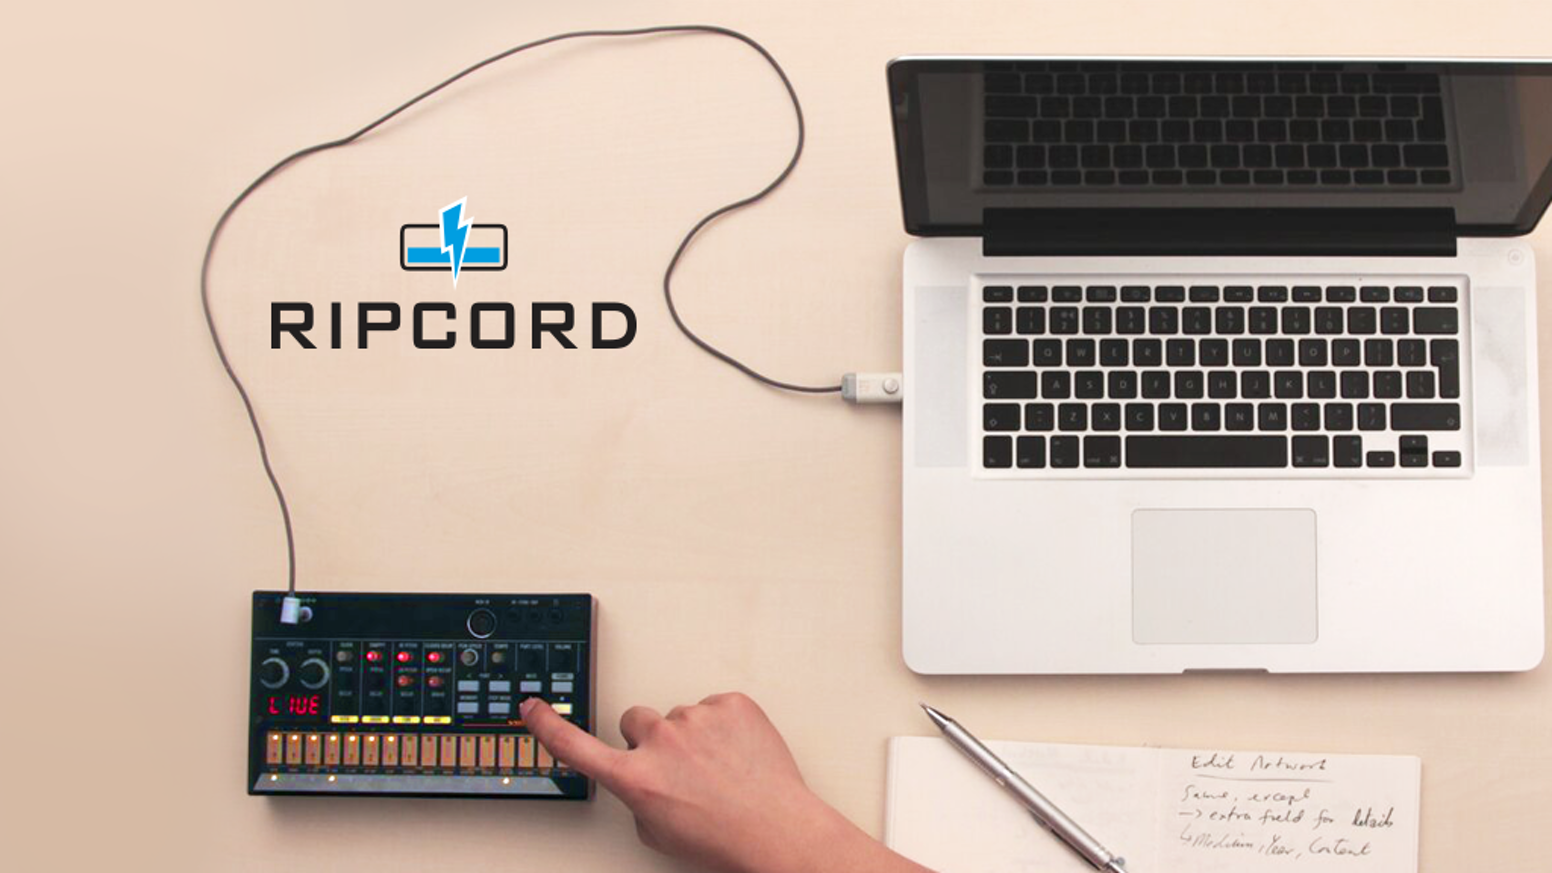 It's not to late to put in a pre-order for Ripcord.  Just click the link below and you can order what you require. Orders will ship with kickstarter orders.